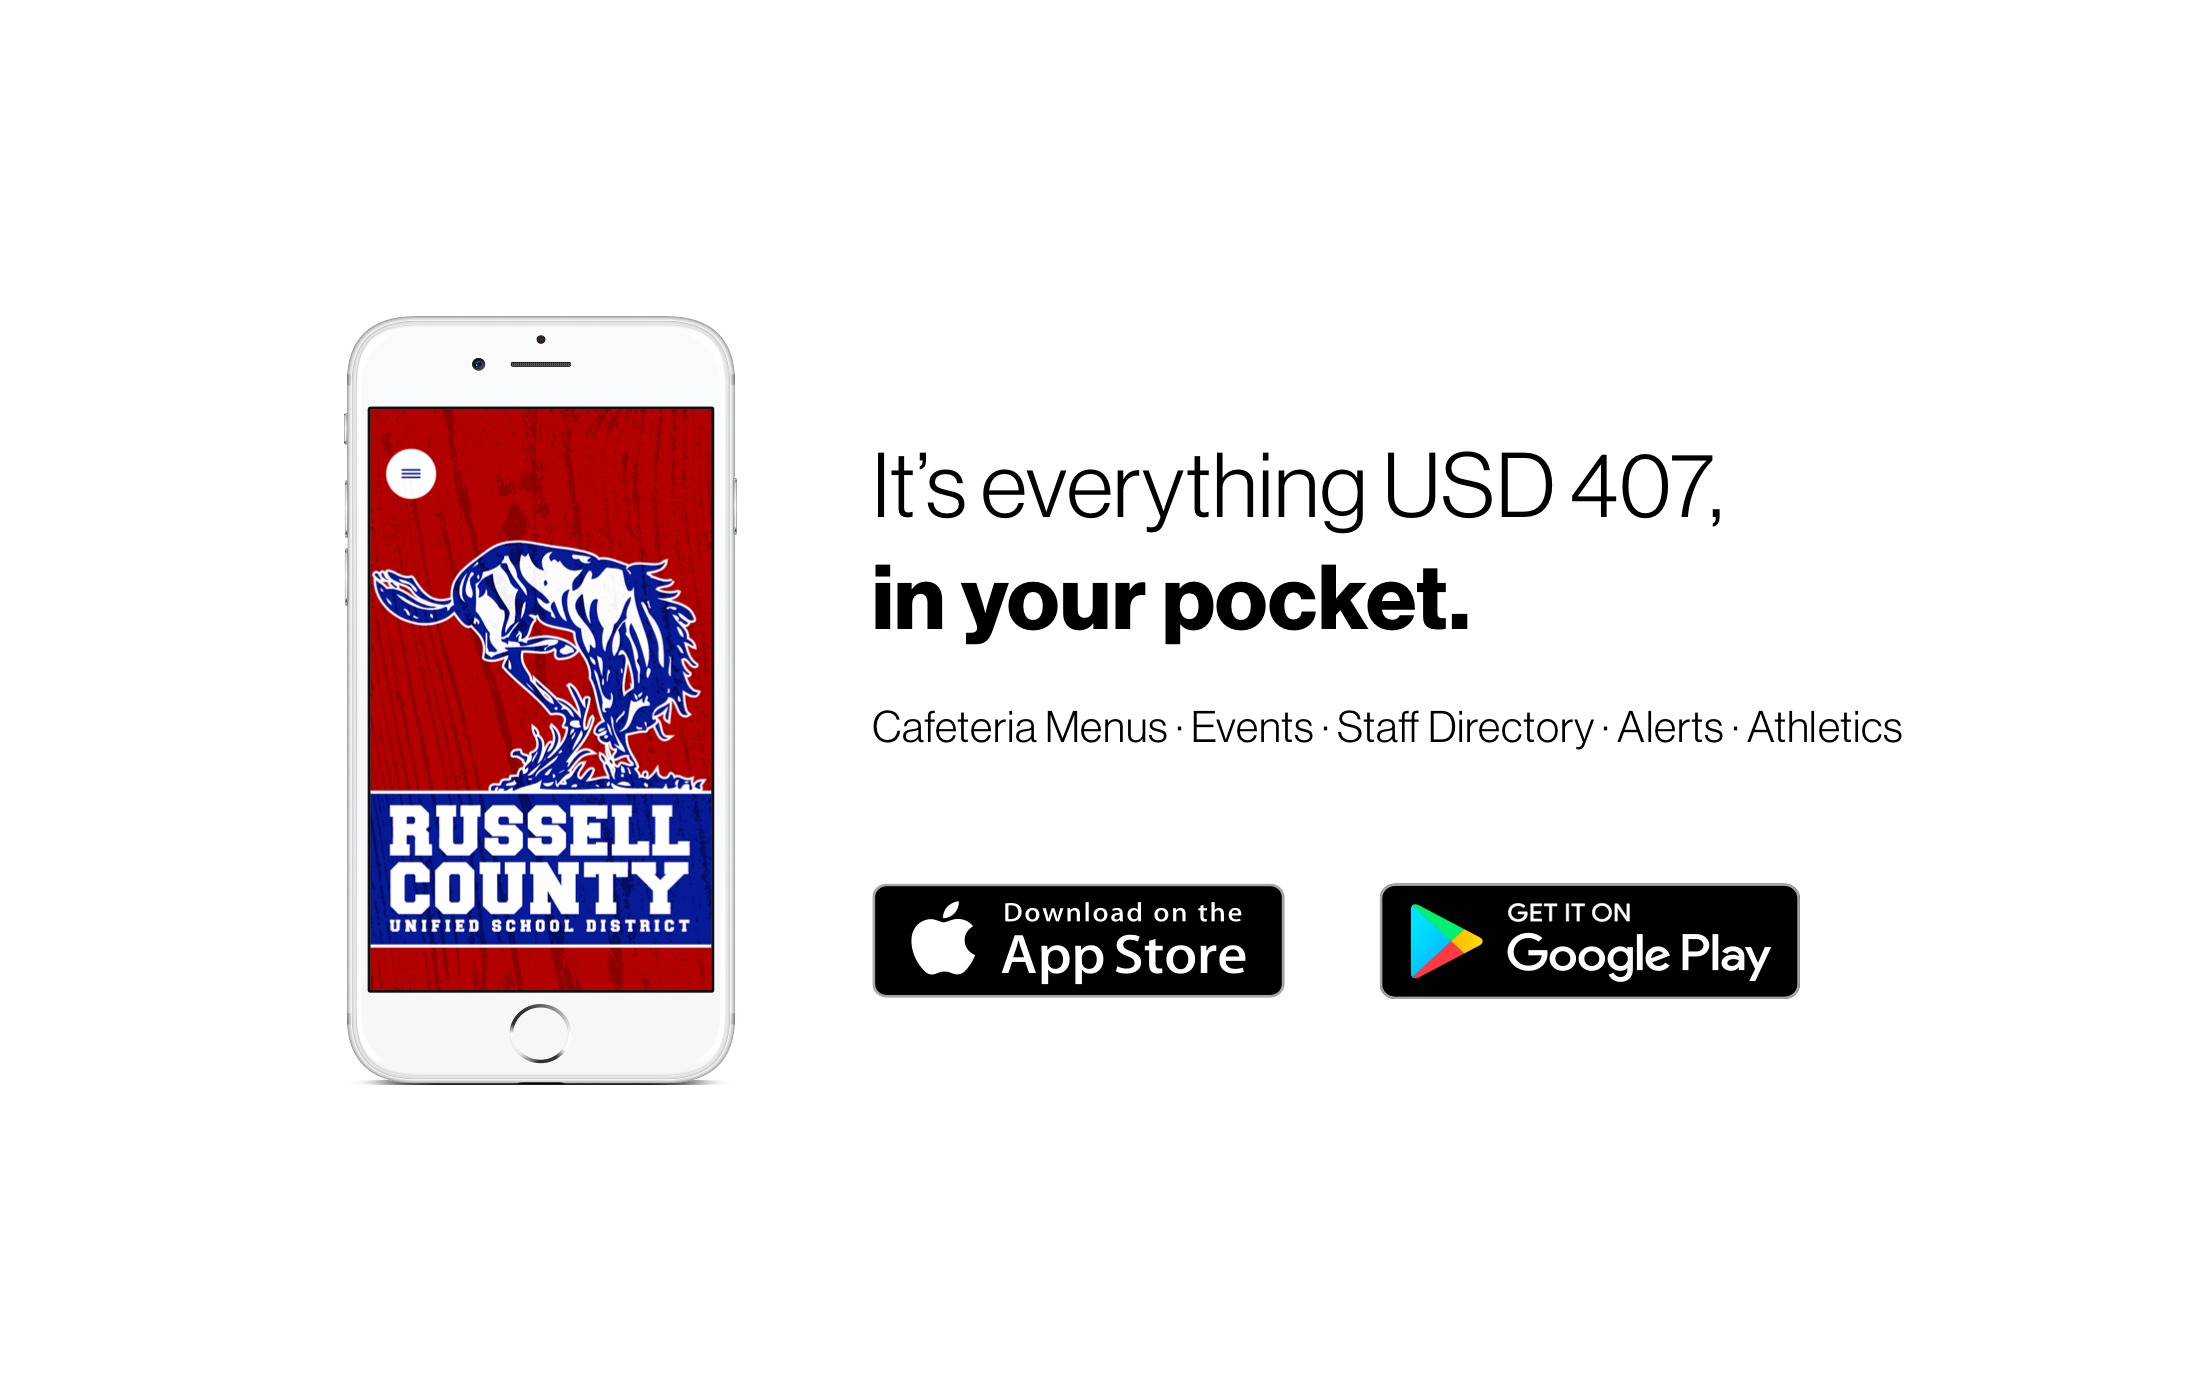 USD 407 App available for Android and iPhone.